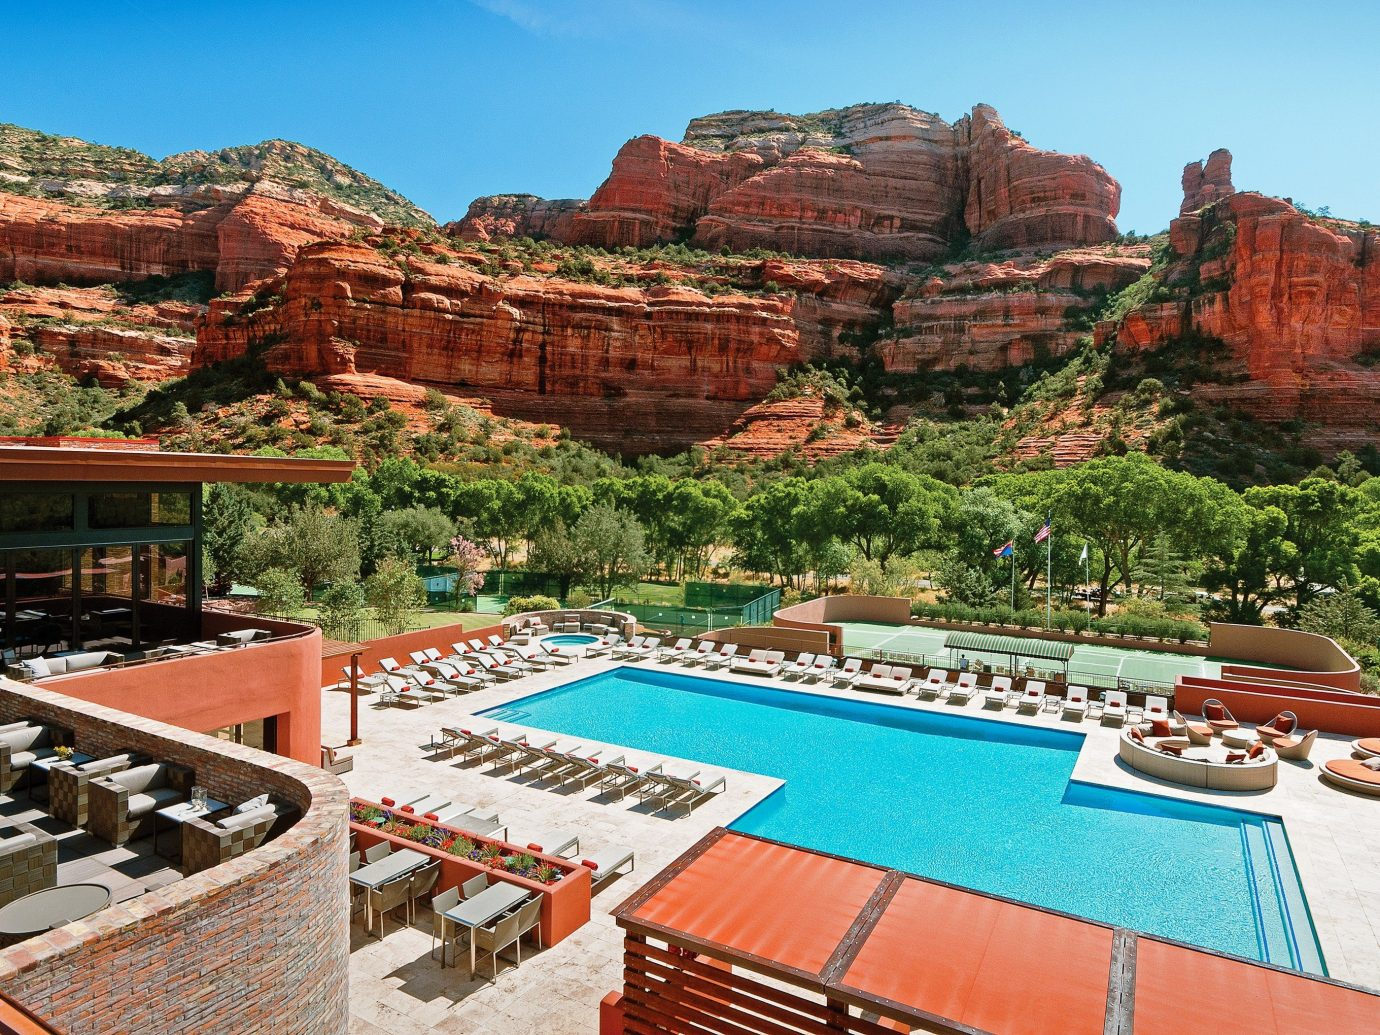 Pool at Enchantment Resort, Sedona